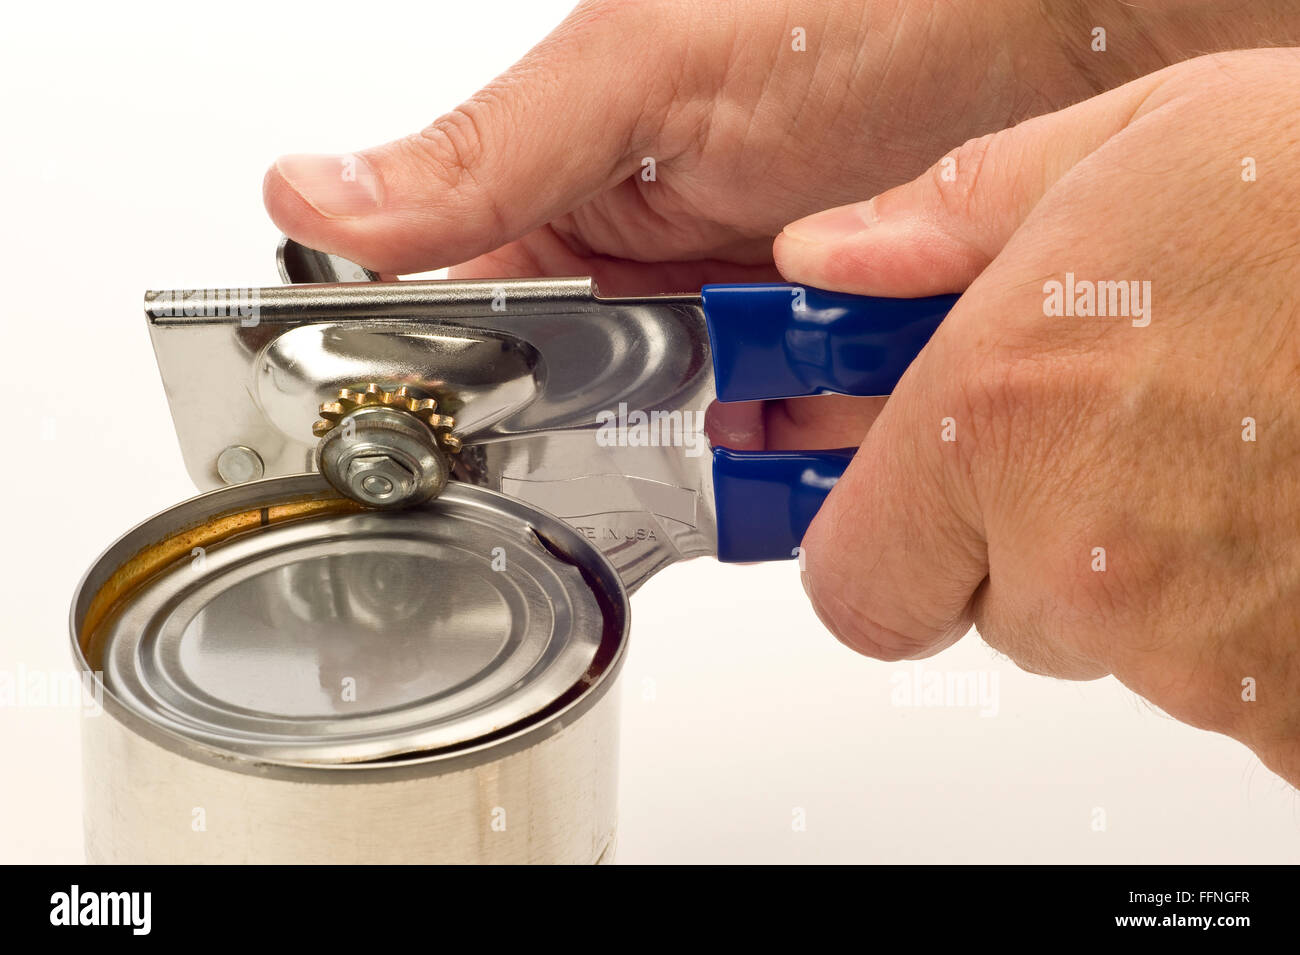 Using Can Opener - Stock Image